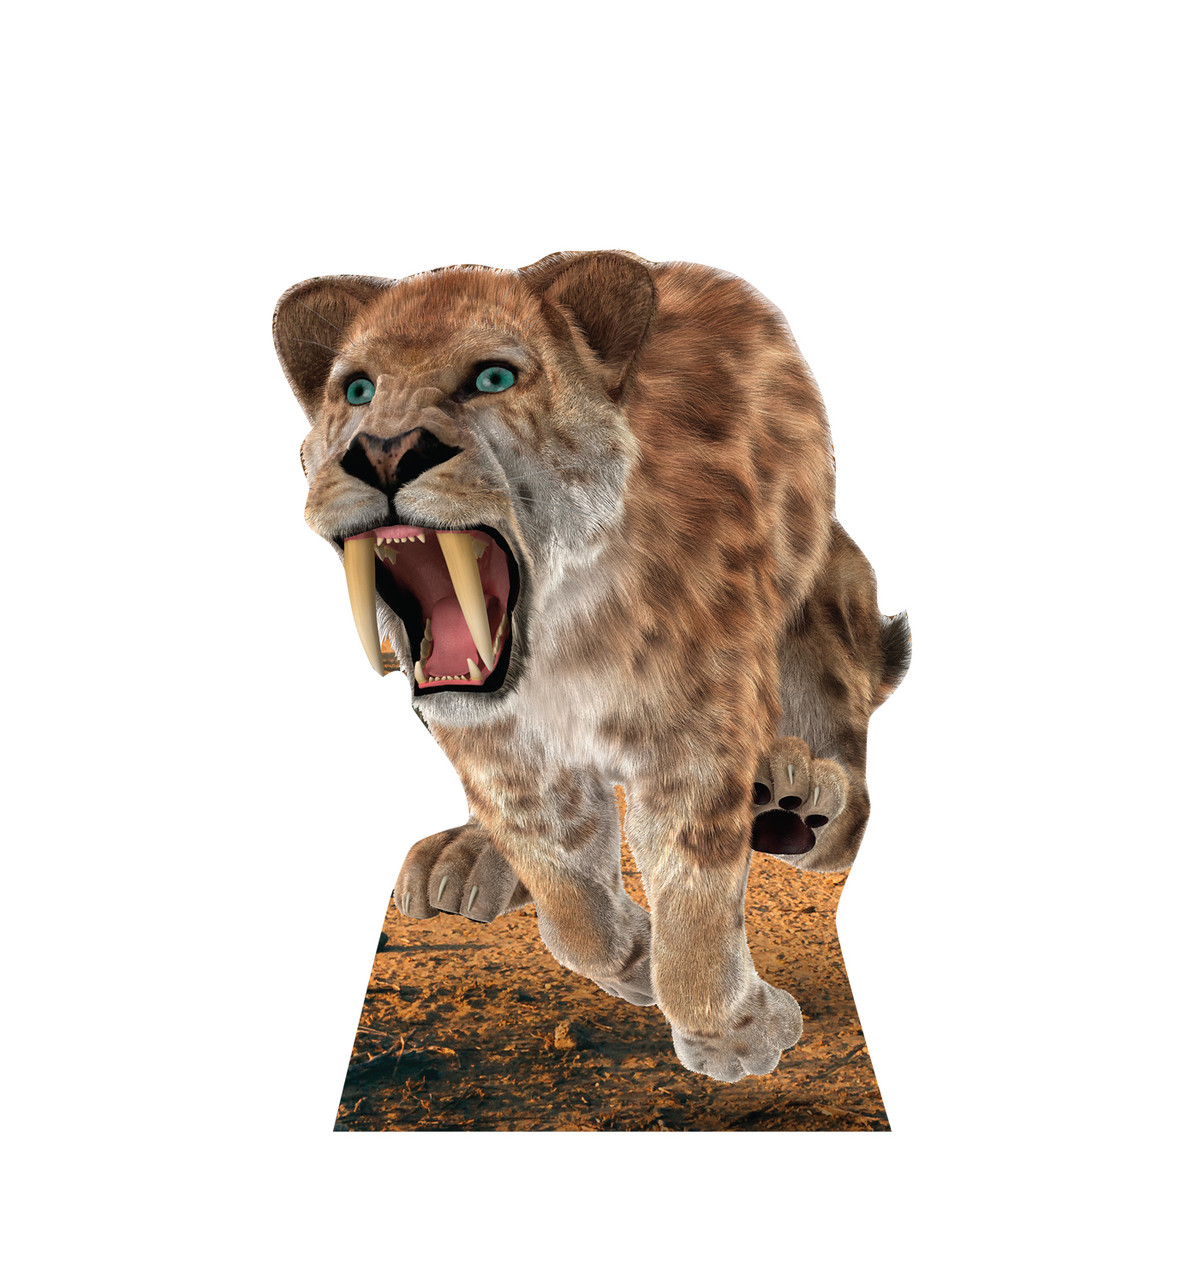 Life-size cardboard standee of the Saber Tooth Tiger.